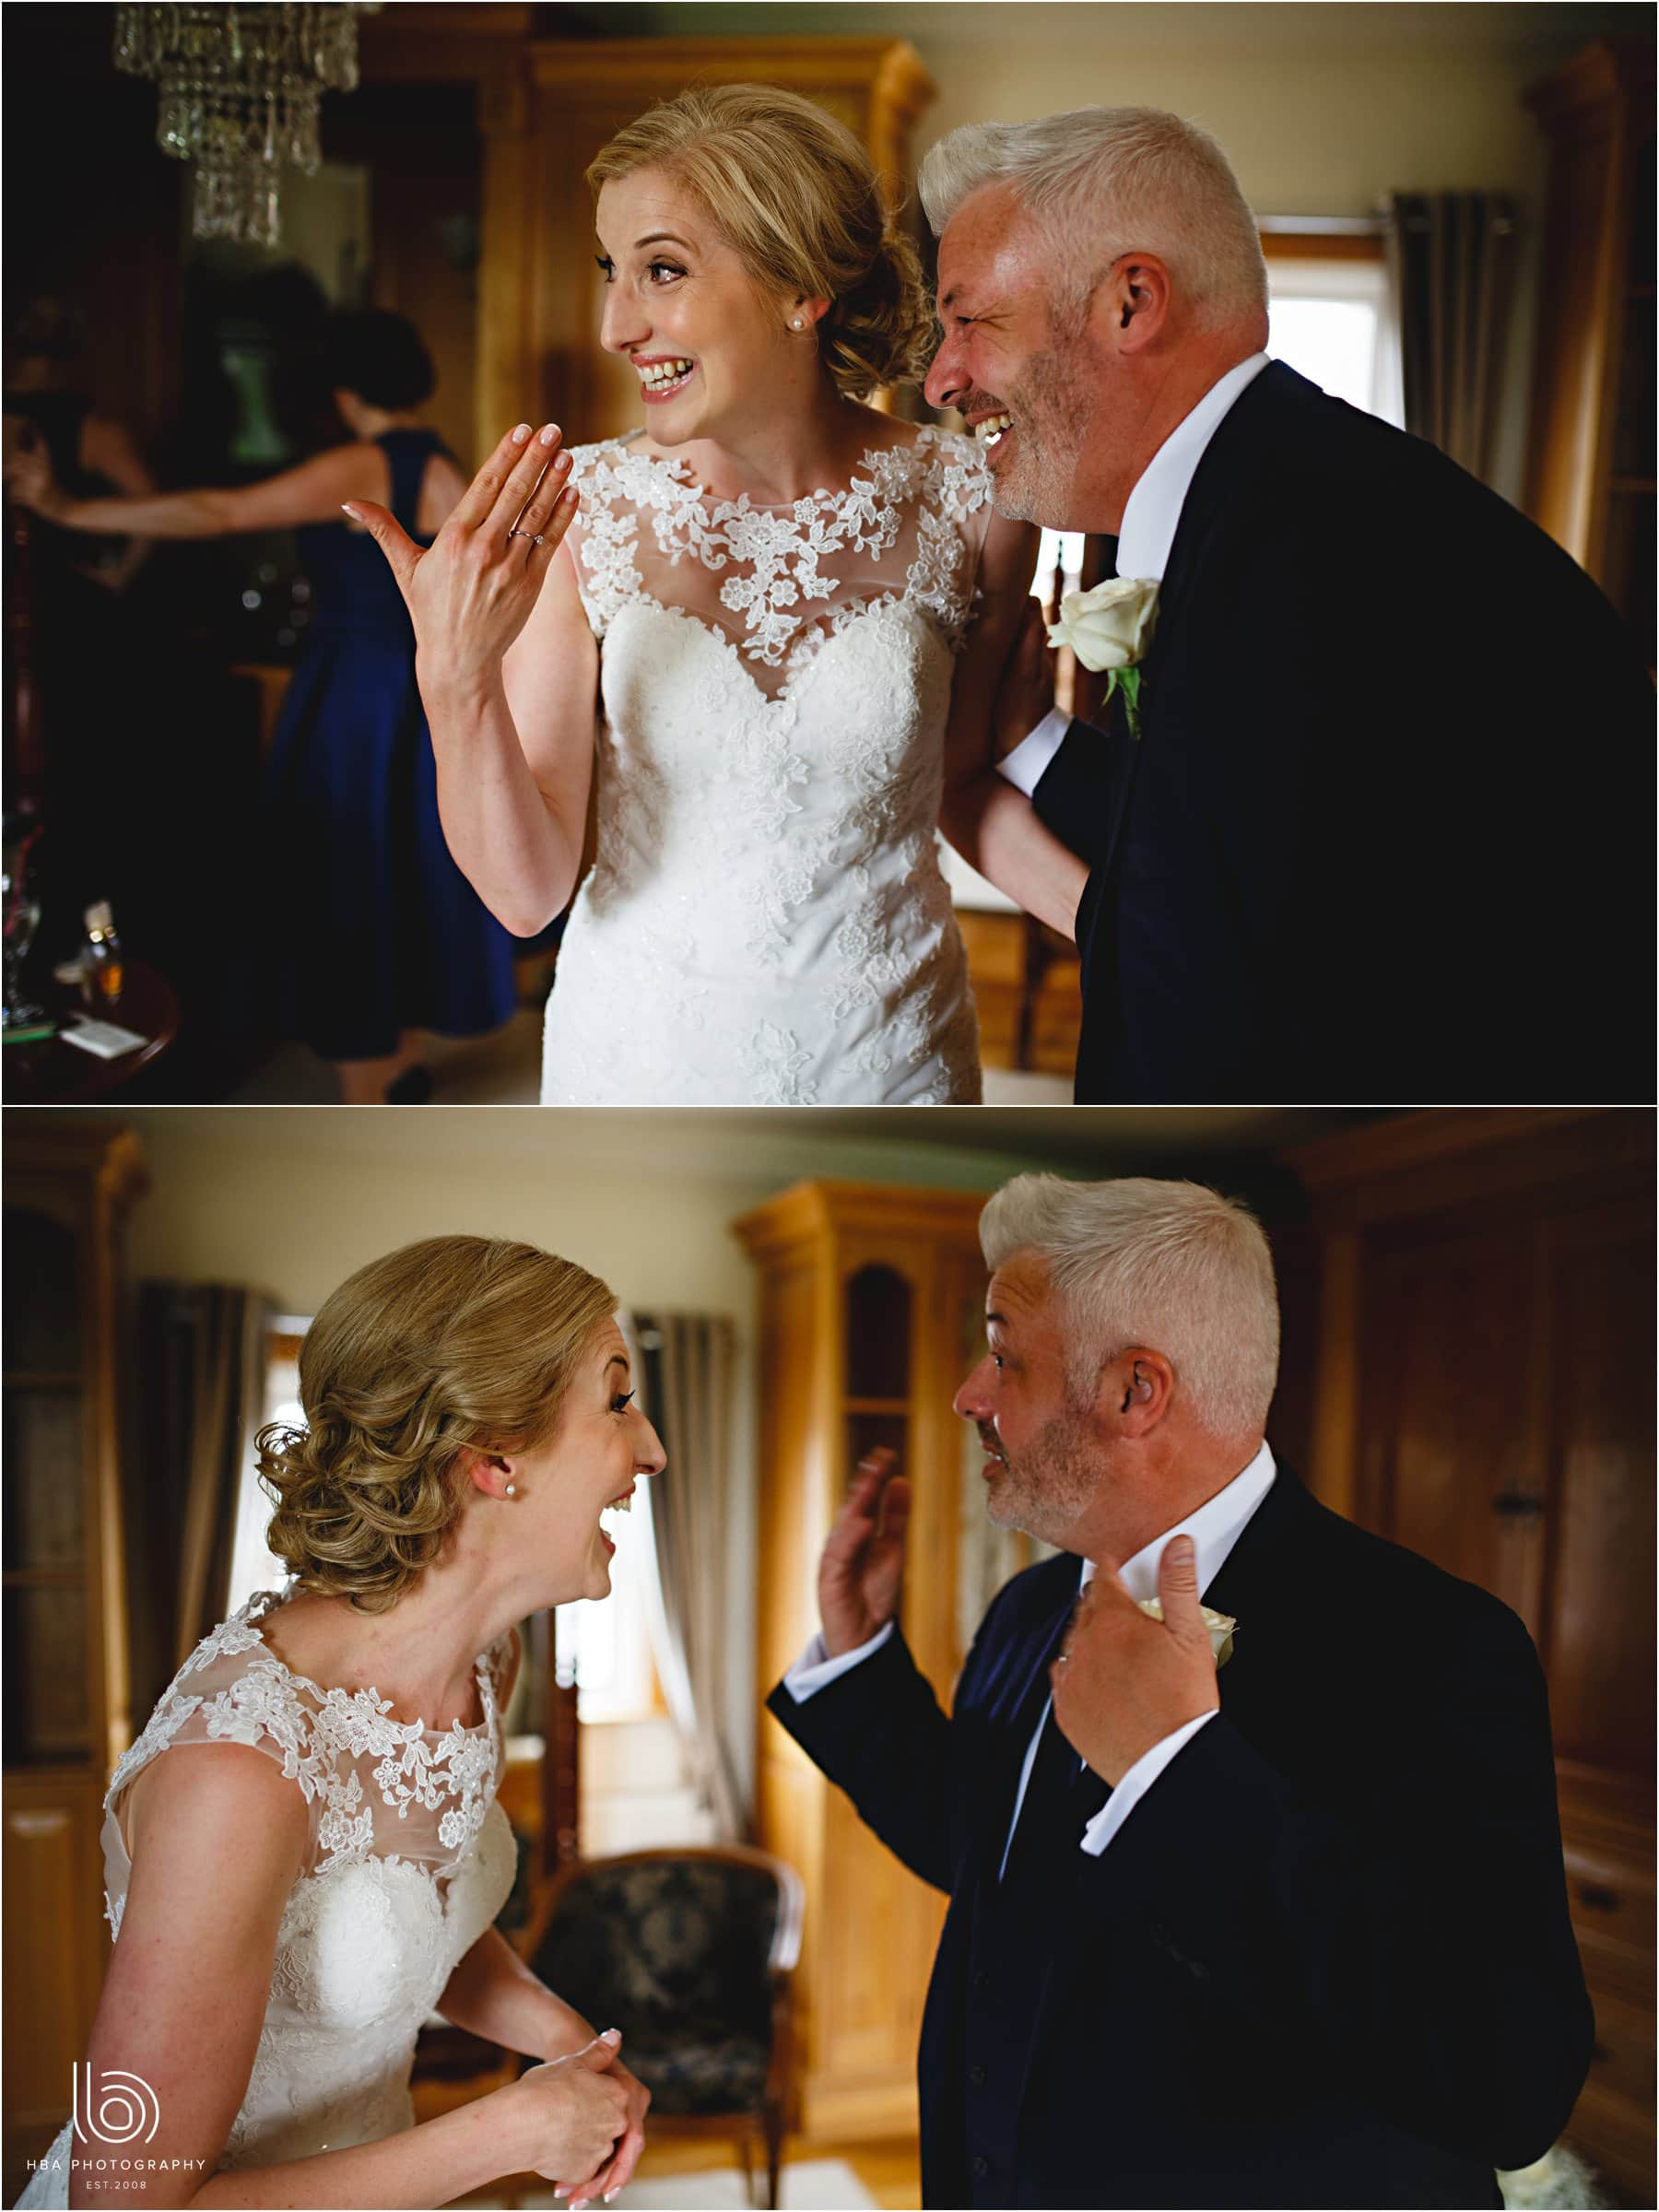 the bride and her brother in tears